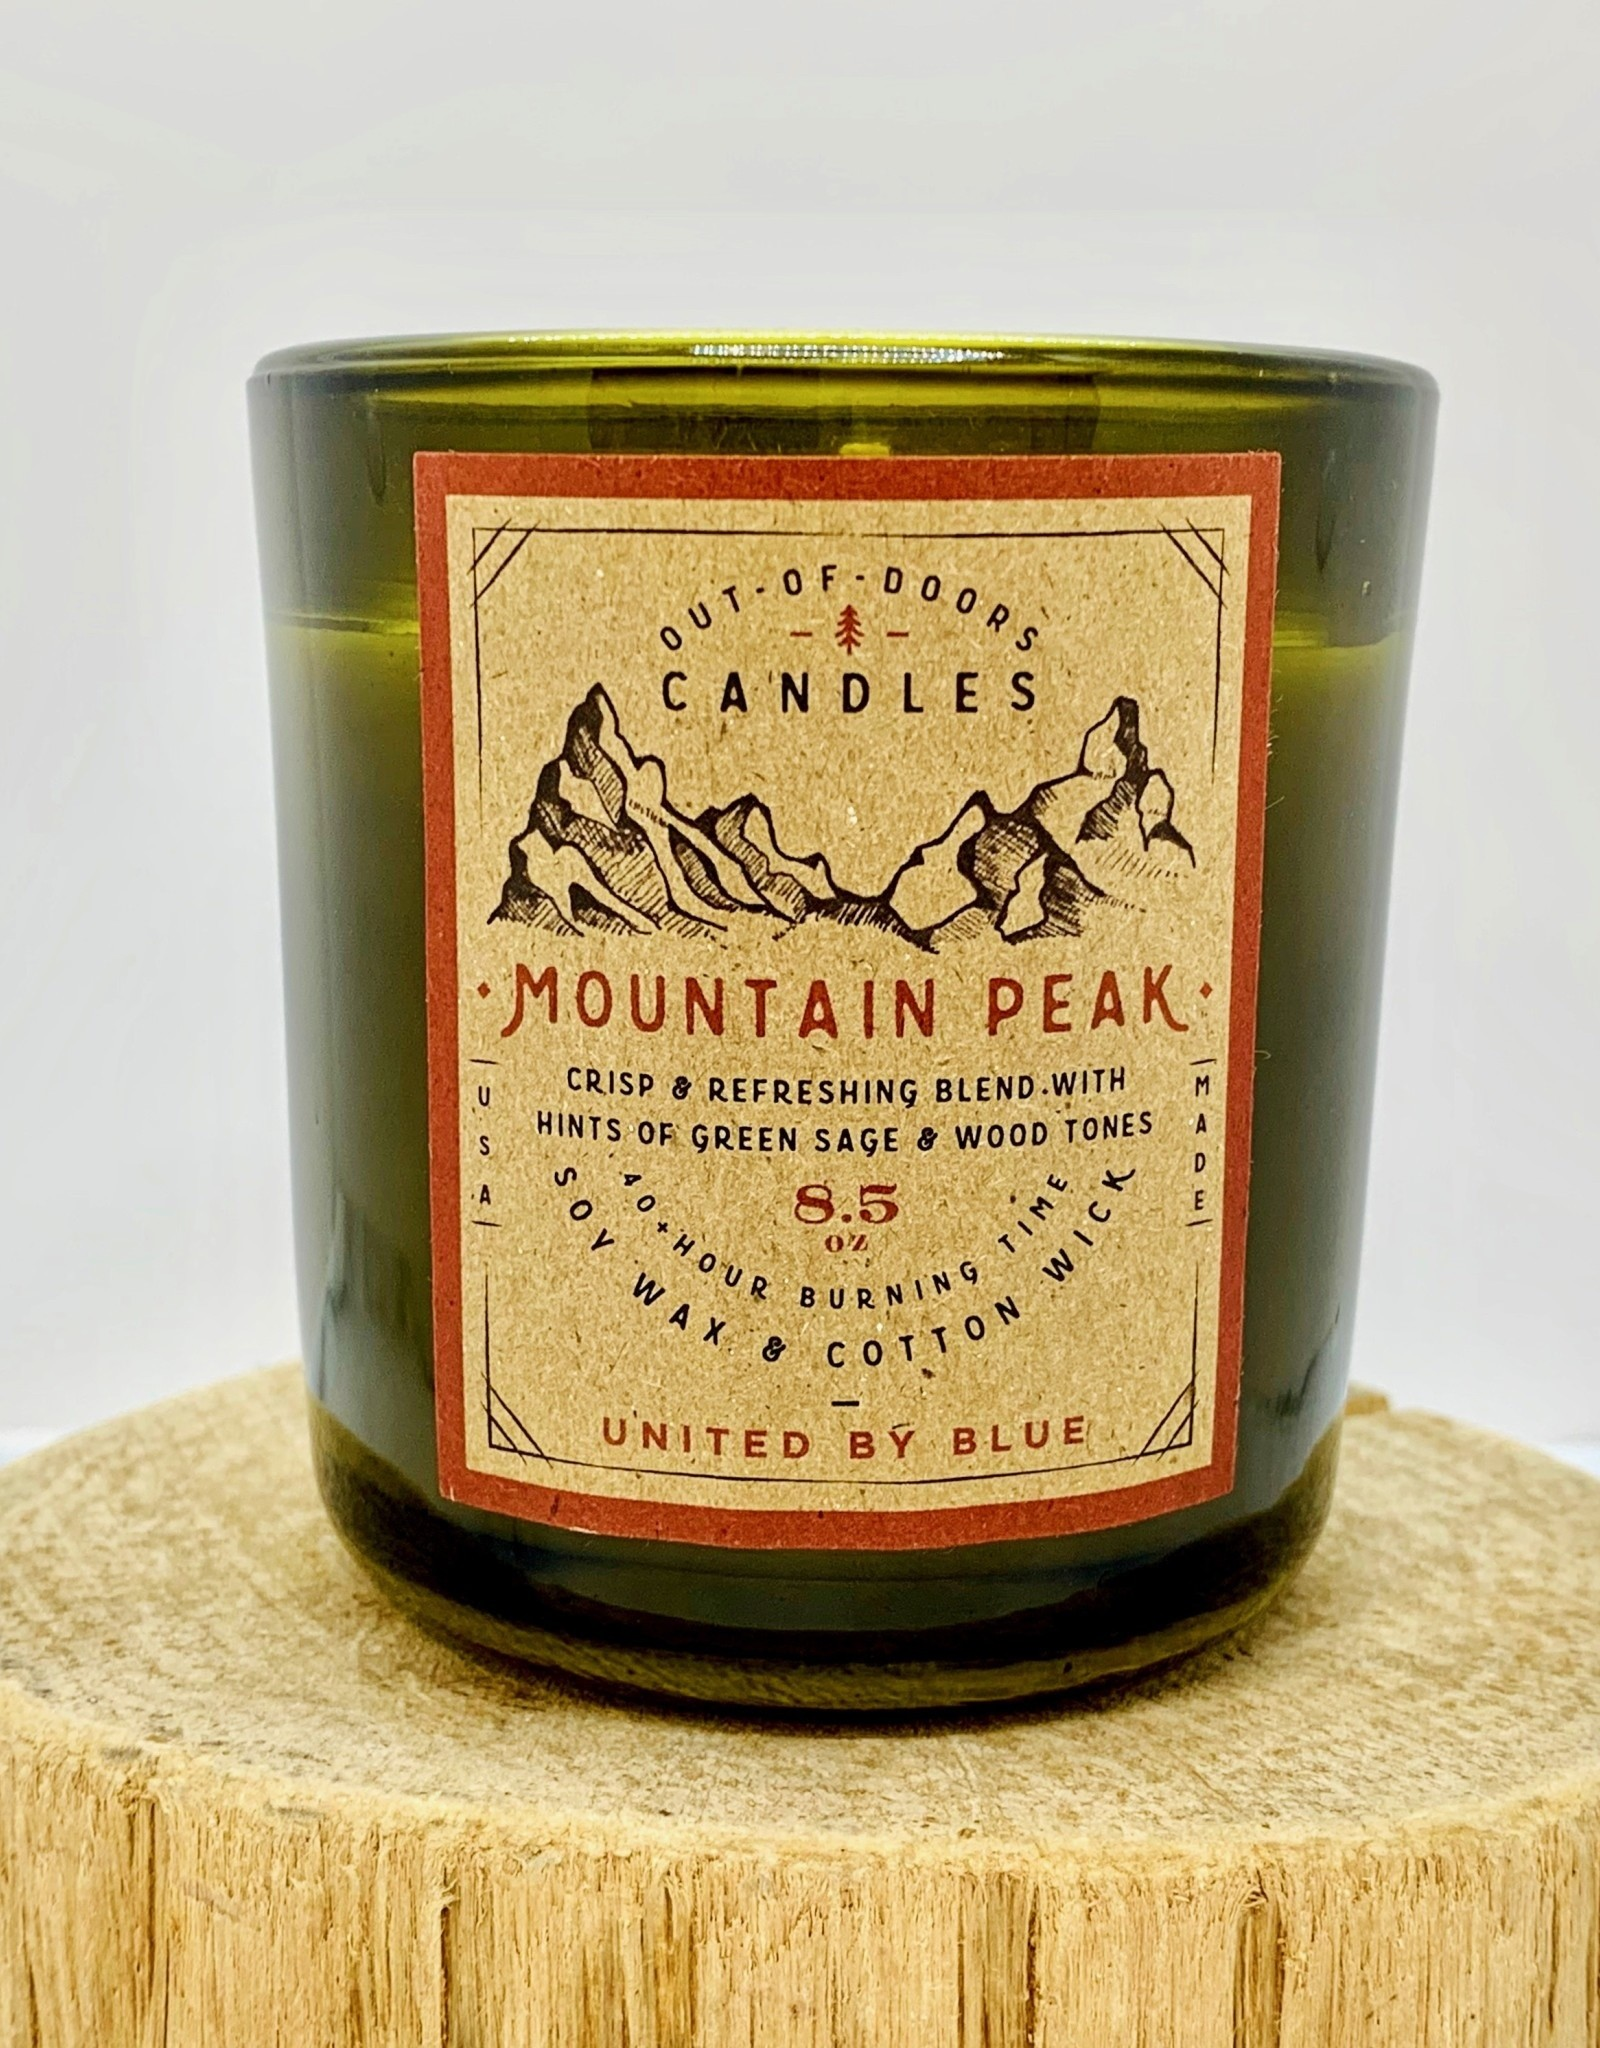 United by Blue Out-of-Doors 8.5oz Candle